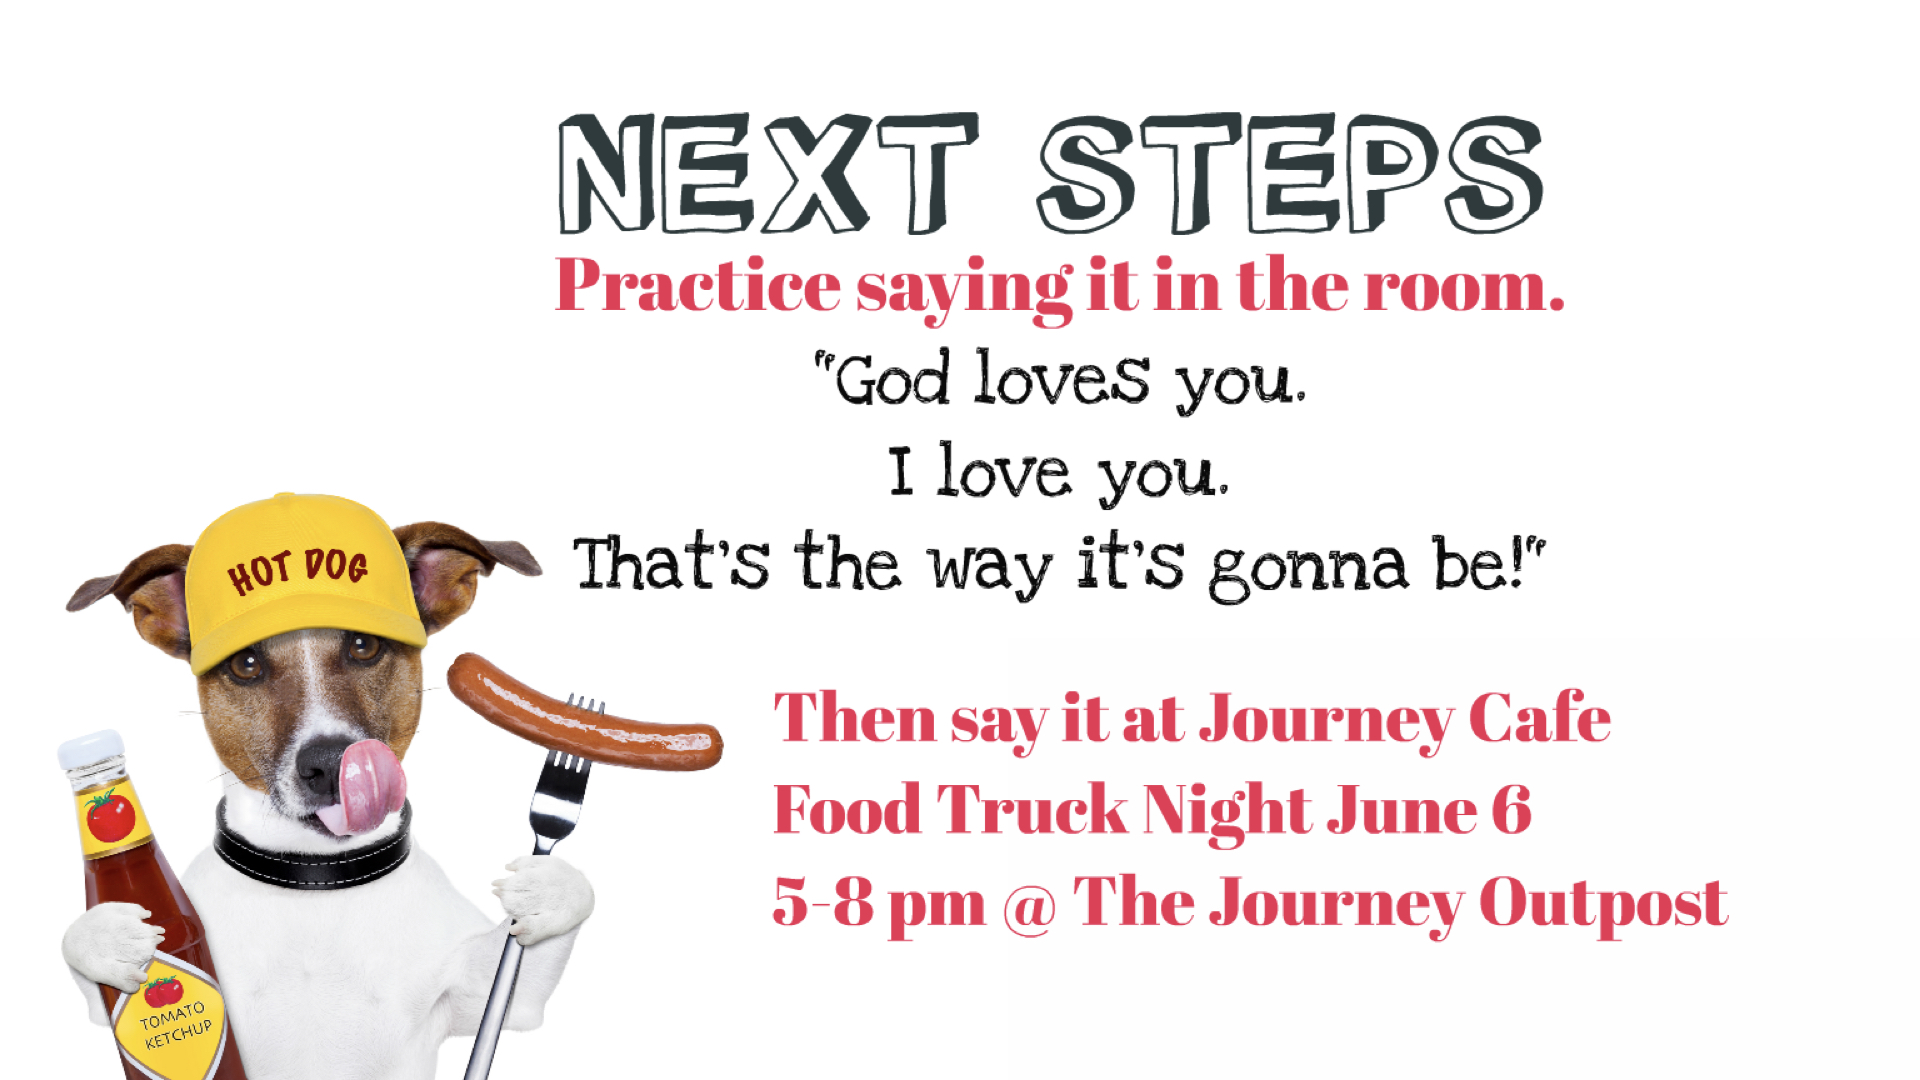 God loves you Food Truck Night at The Journey! Blog post written by Greg Taylor and provided by The Journey: A New Generation Church of Christ.